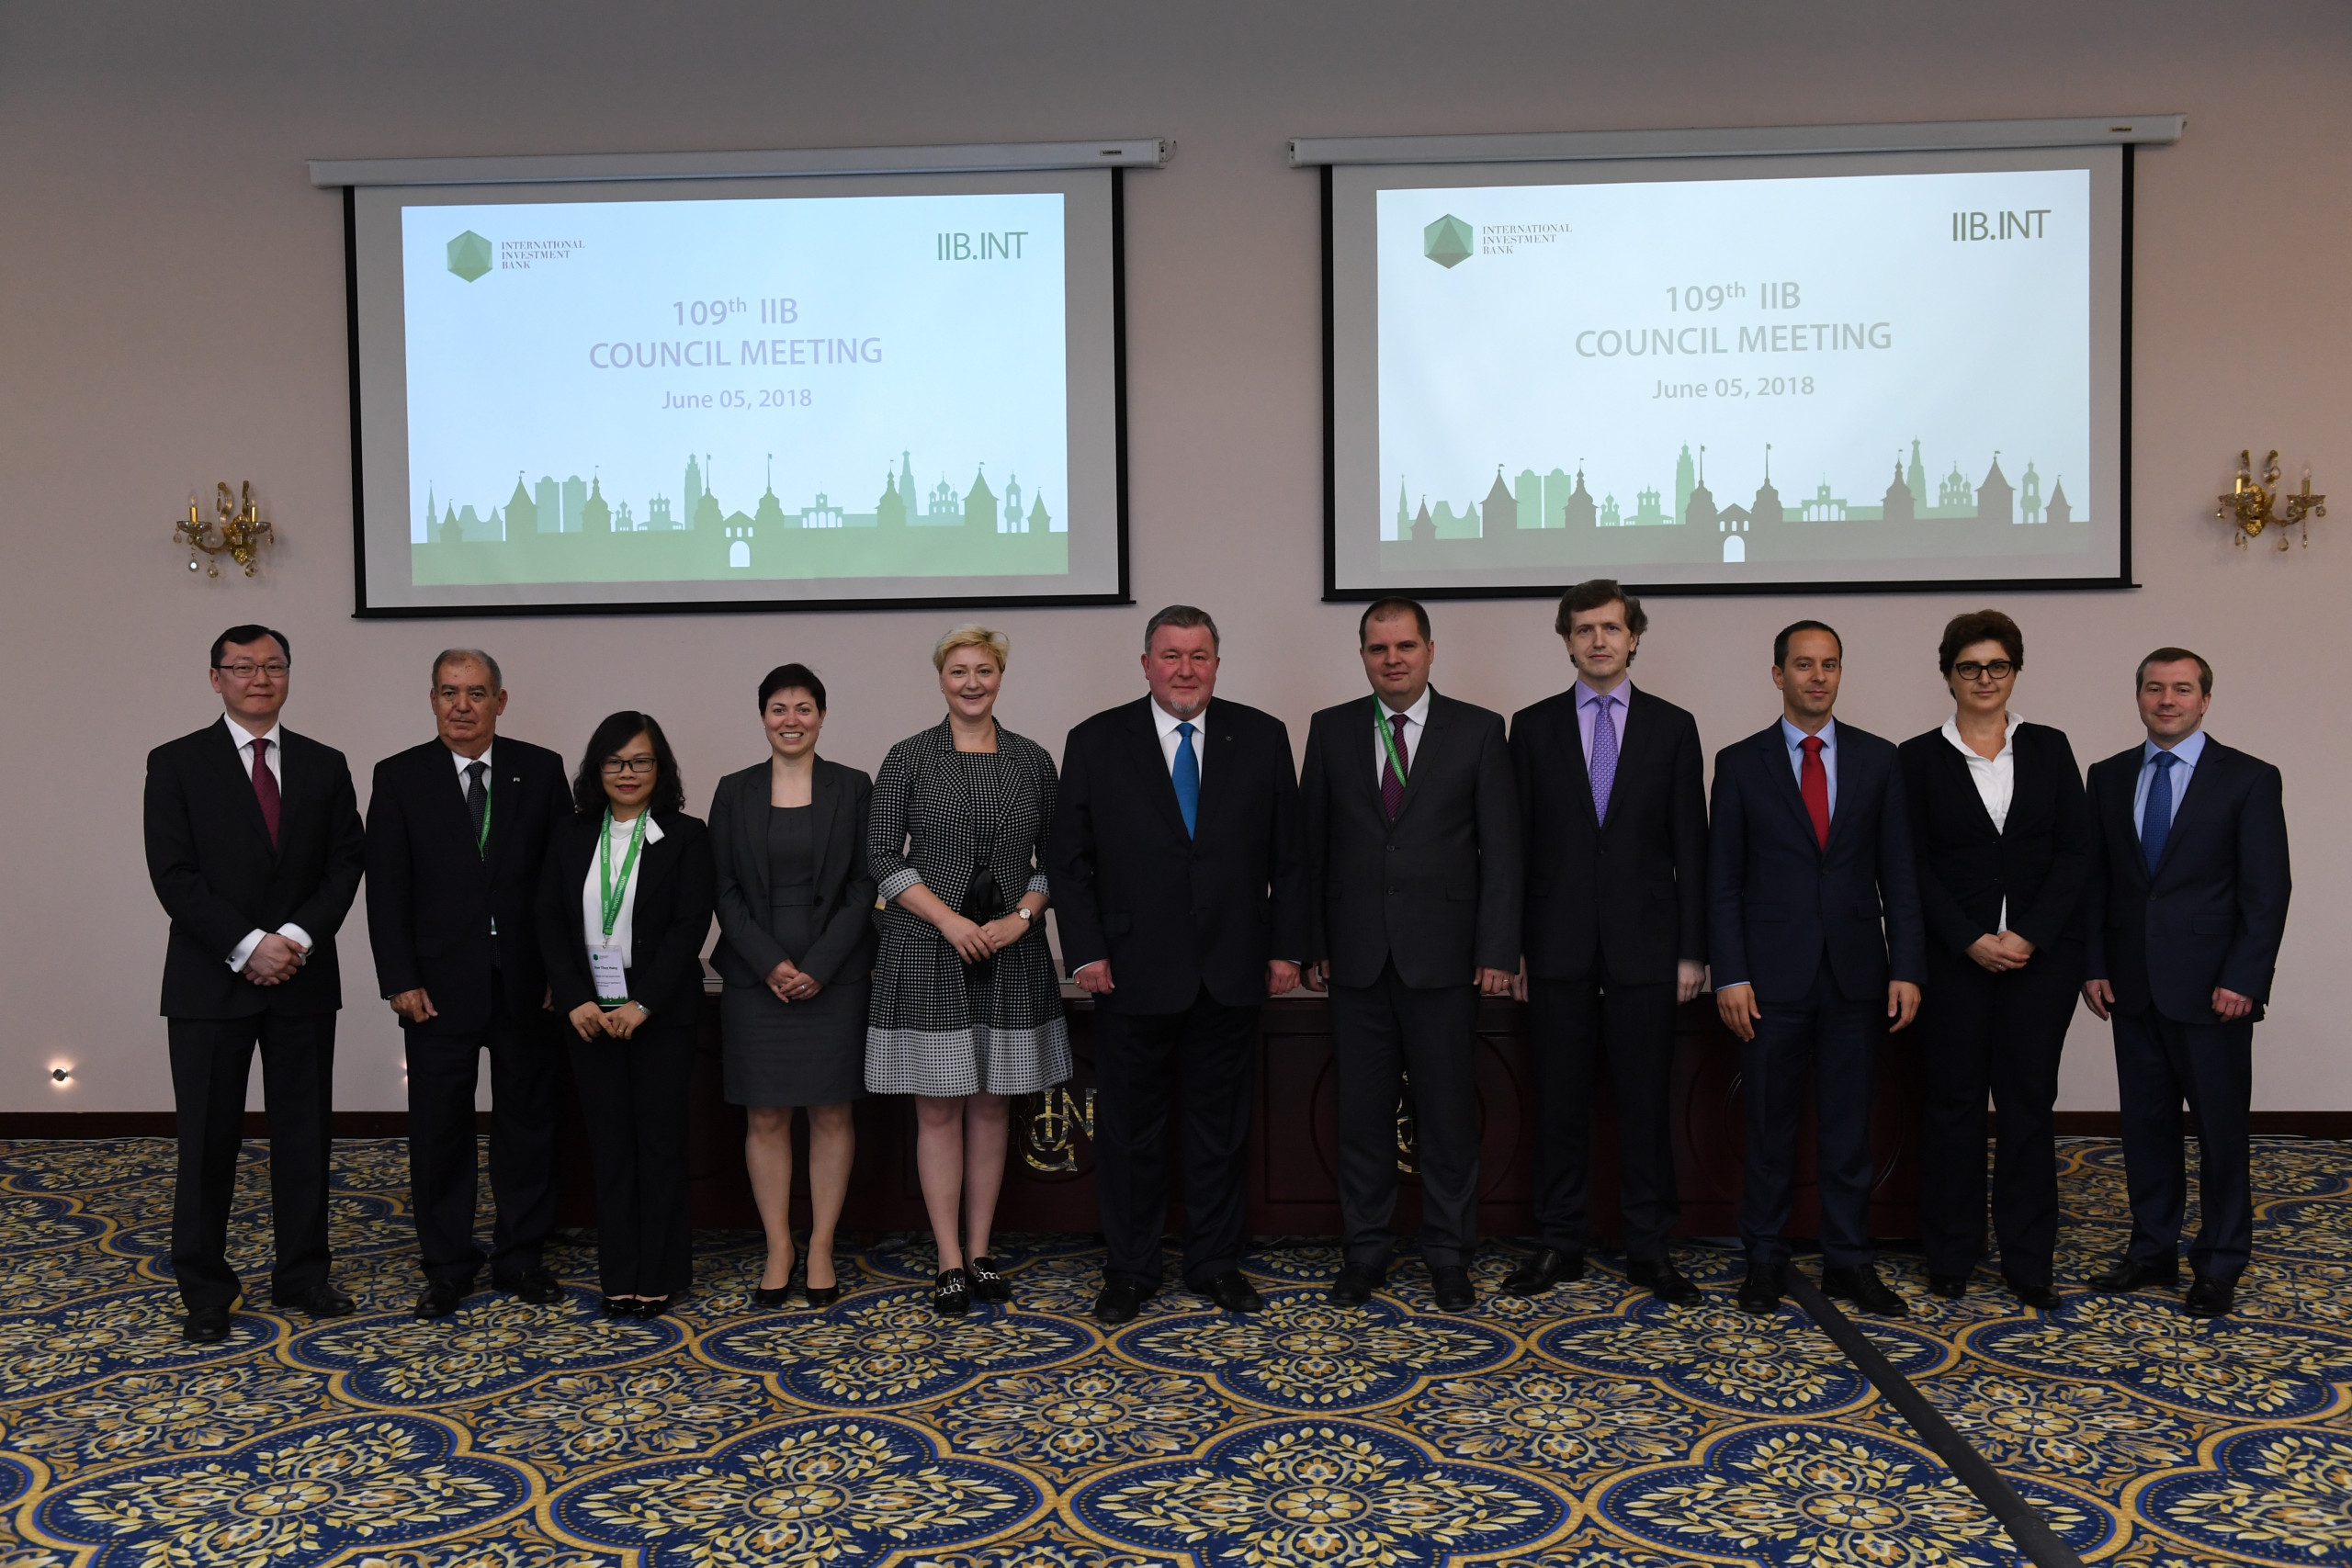 109 IIB COUNCIL MEETING: a new strategic cycle has been launched.